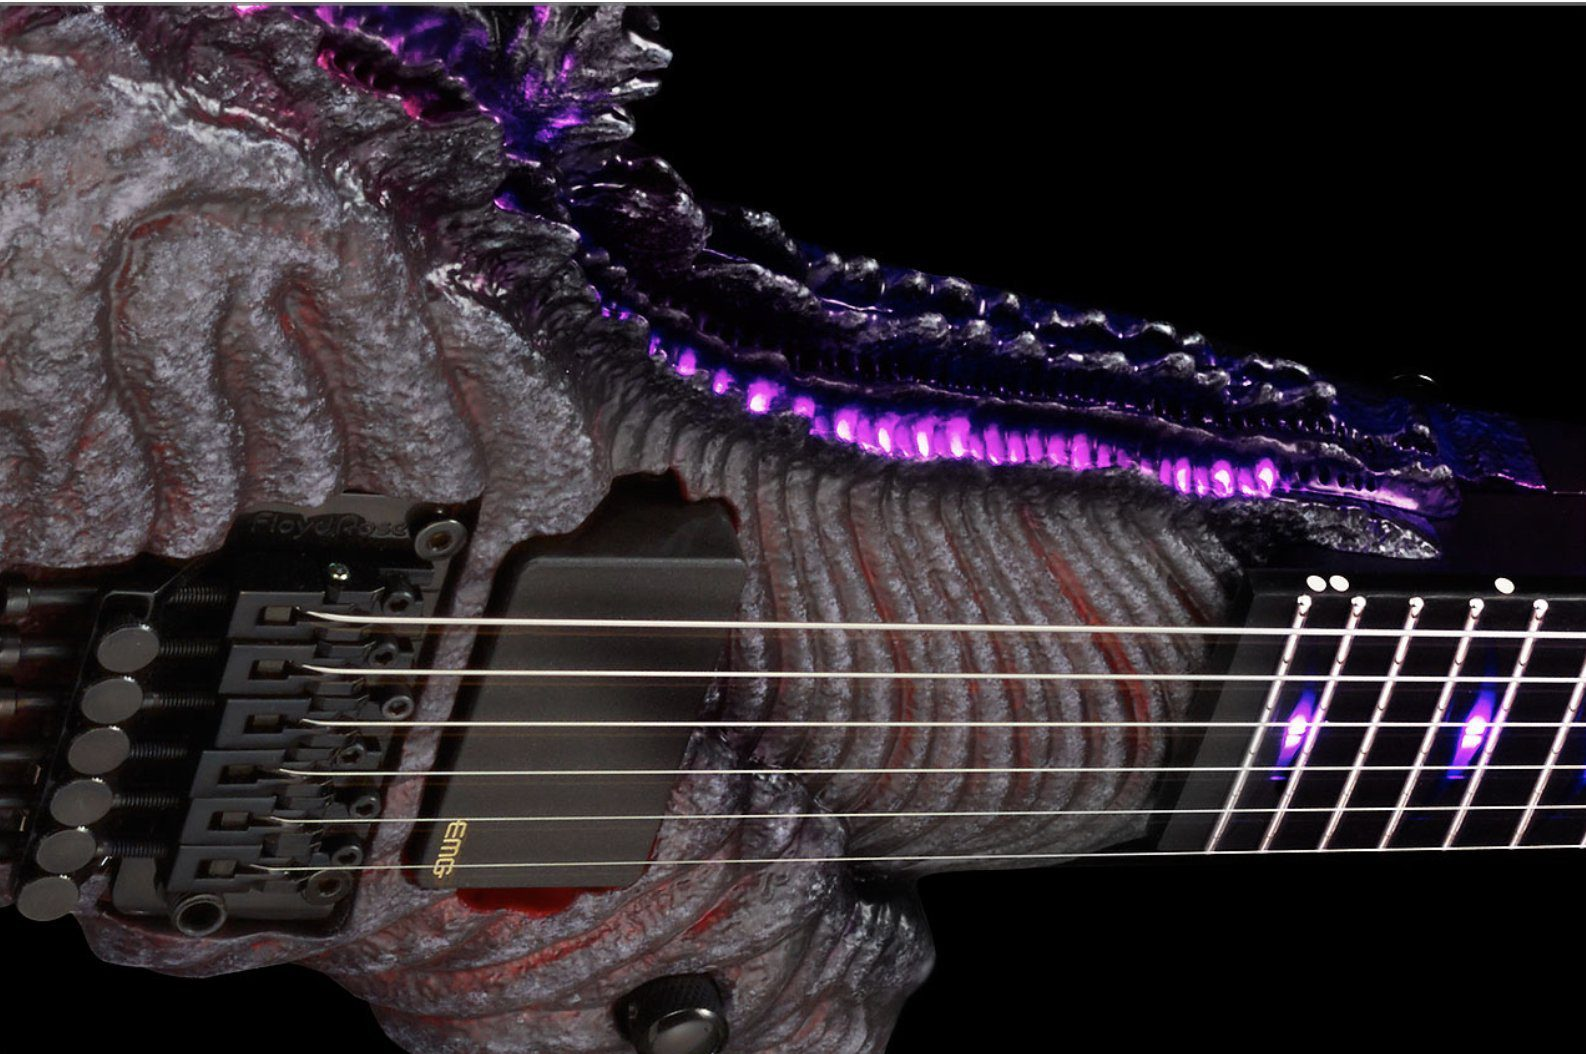 ESP-limited-edition-Godzilla-model-with-Purple-LED